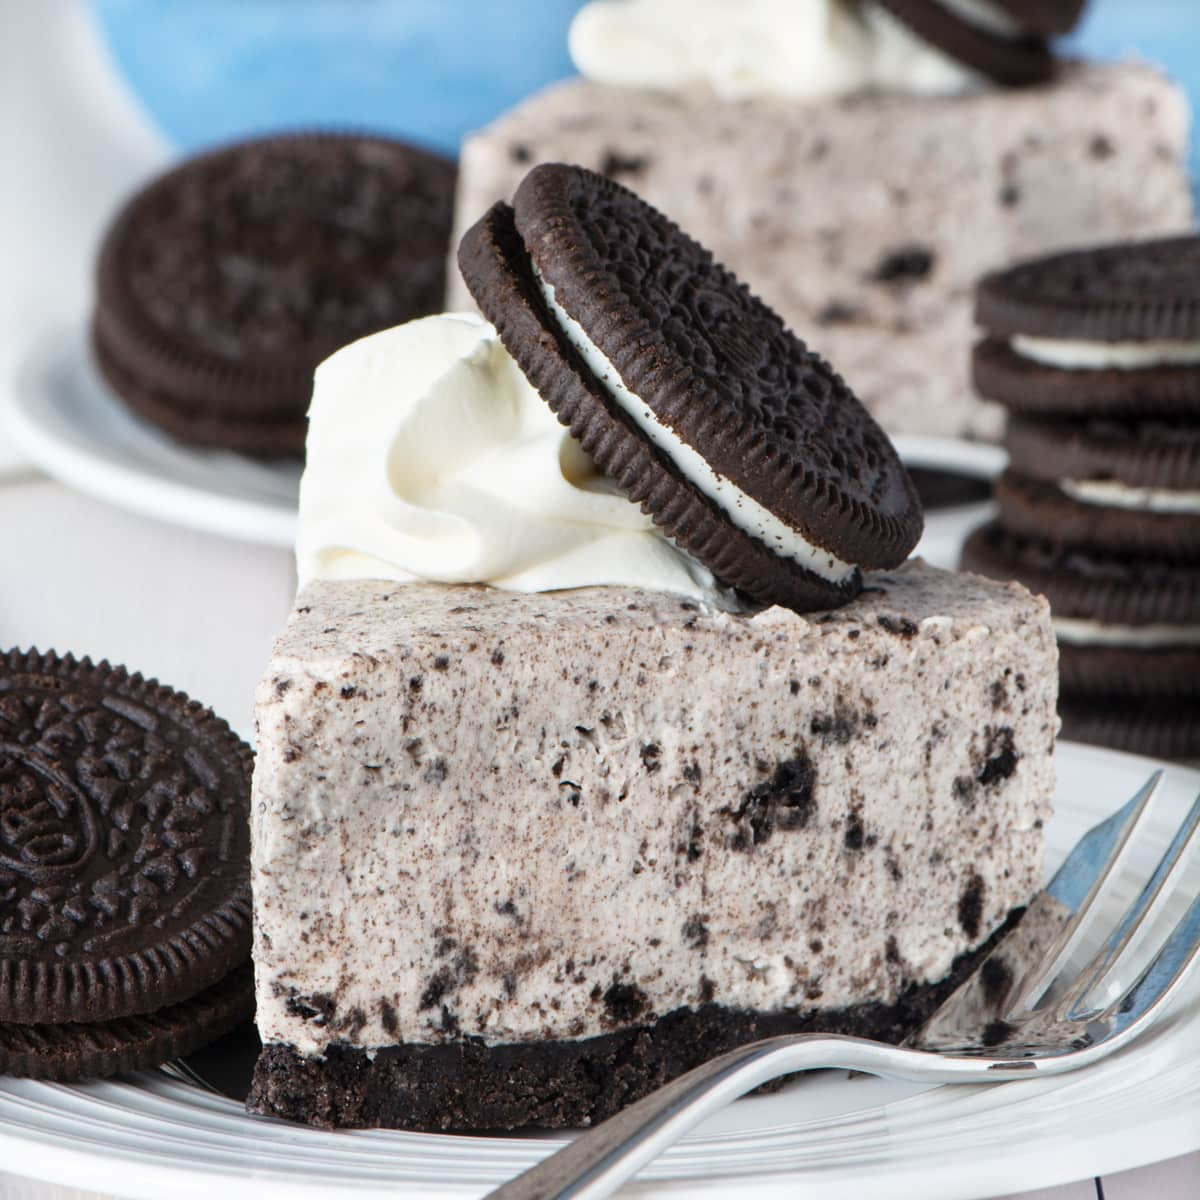 A slice of Oreo cheesecake.